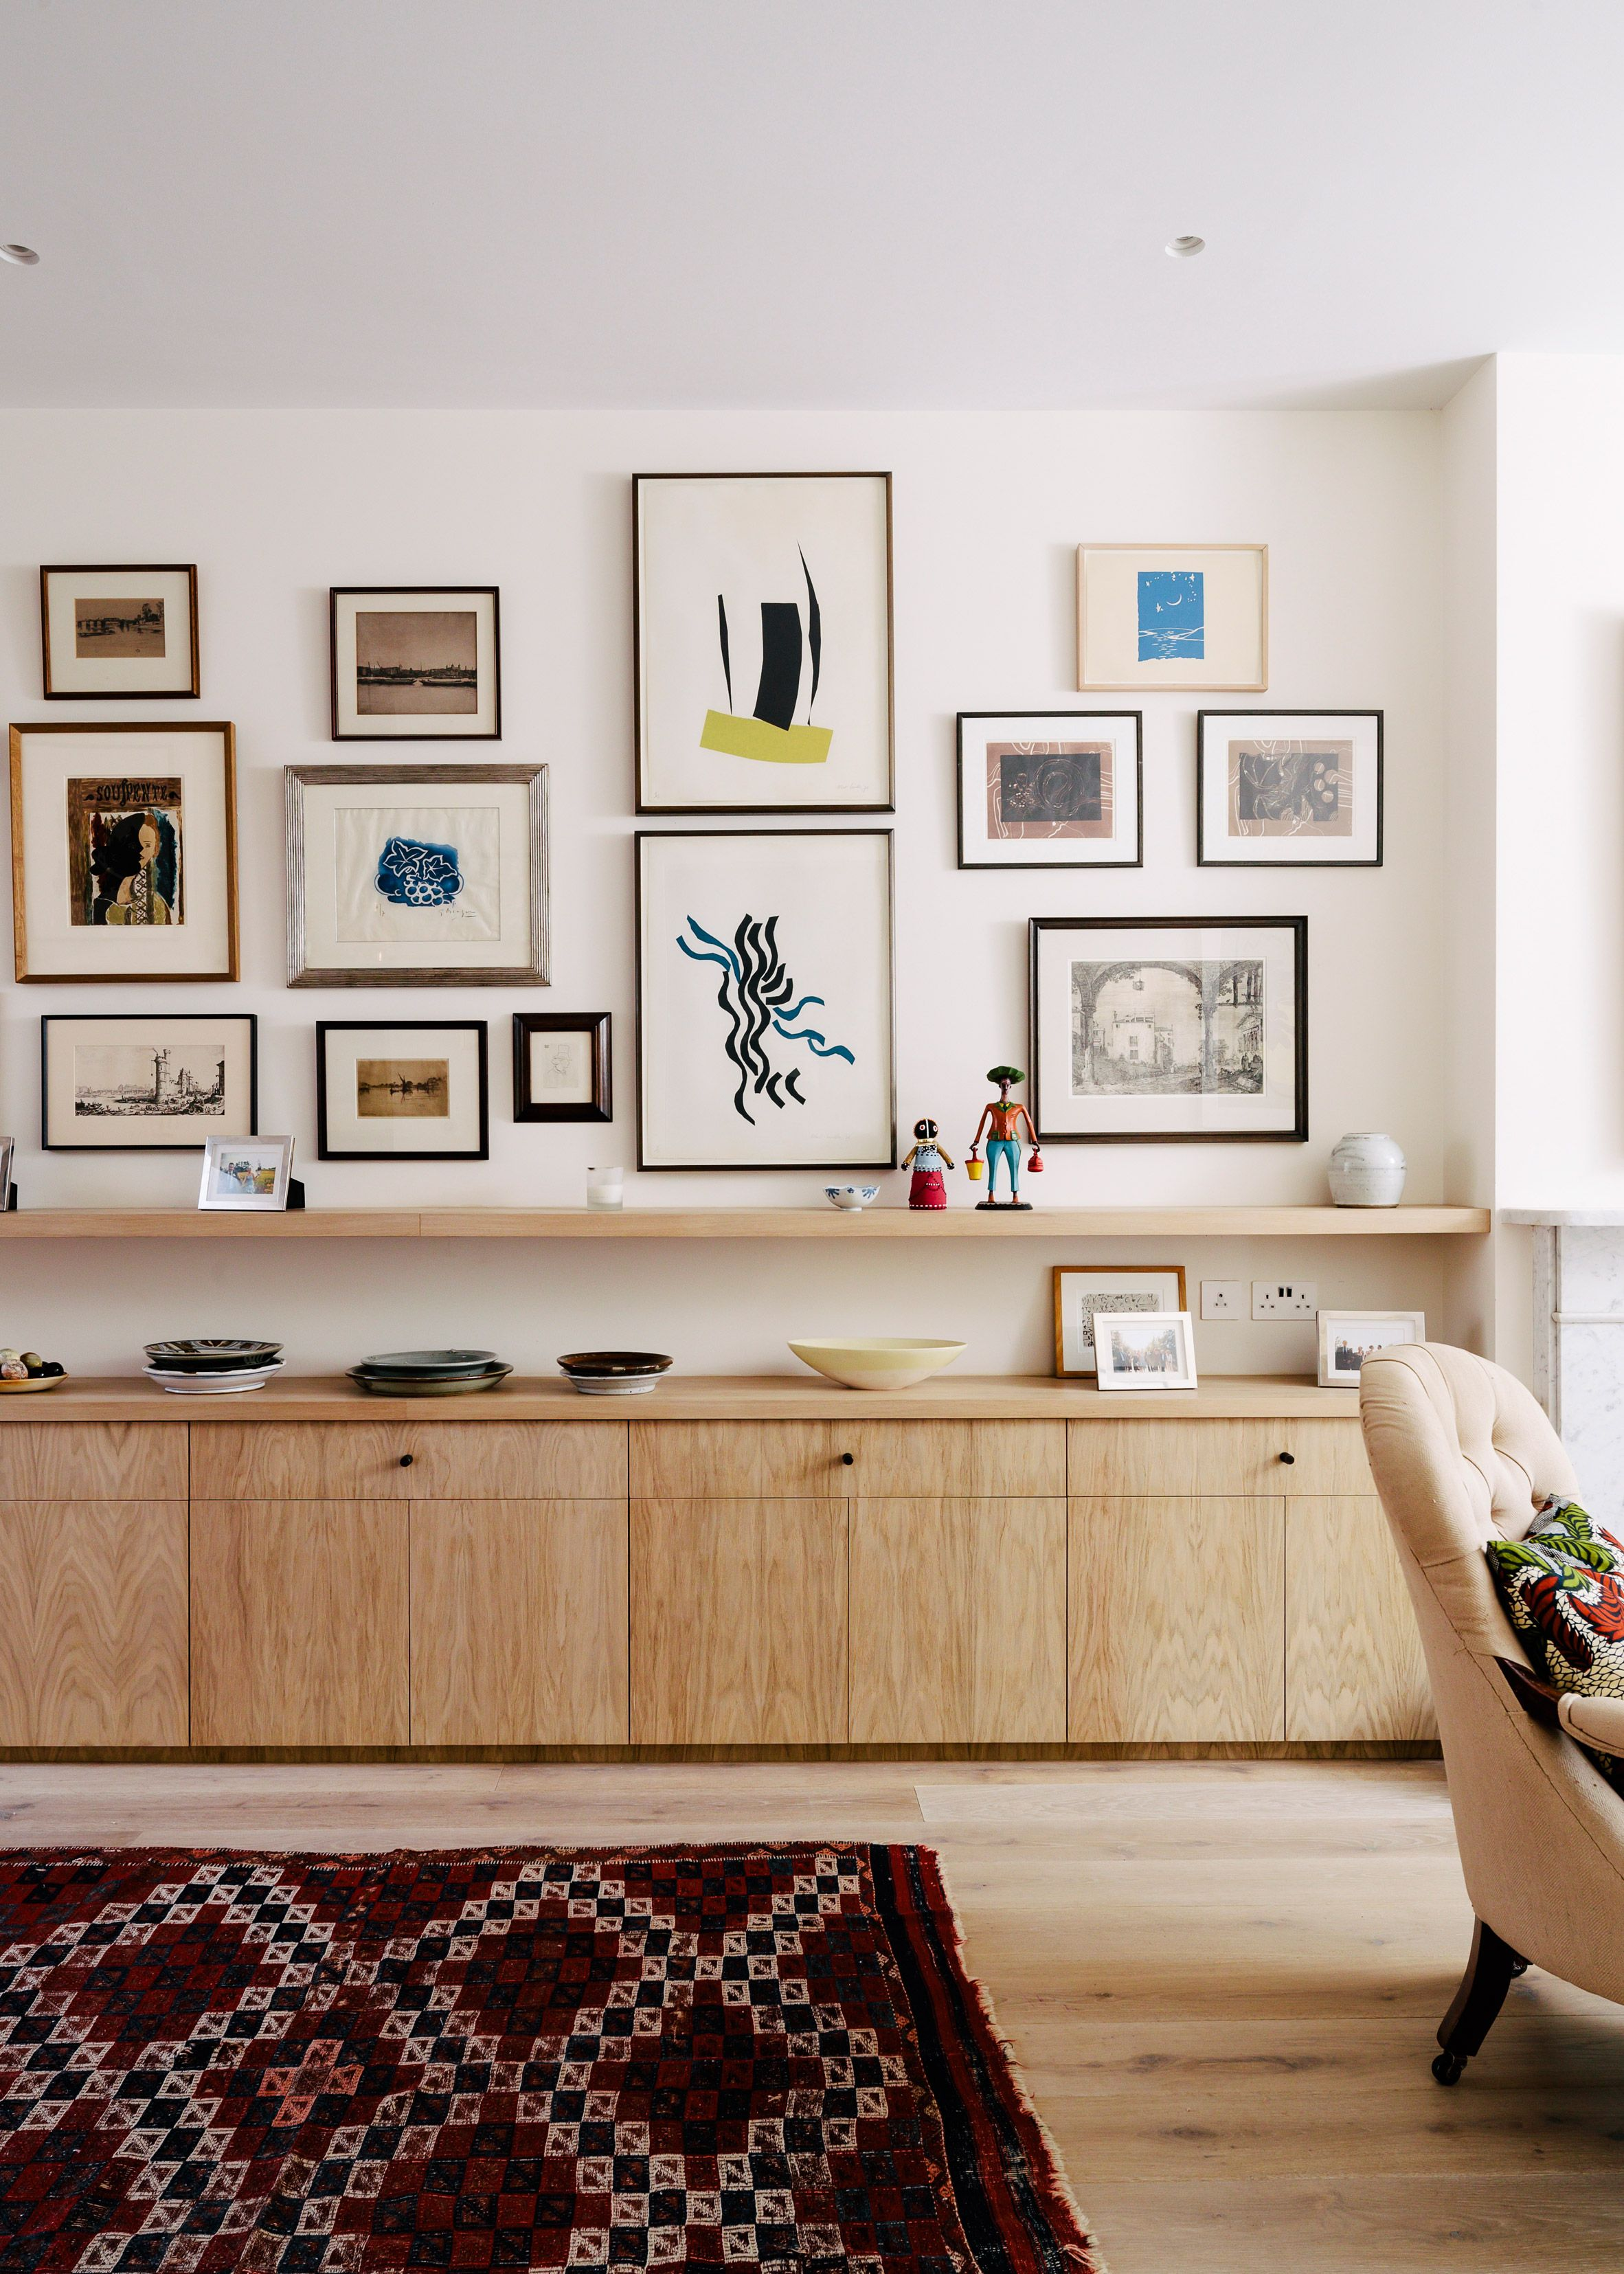 Neil Dusheiko Creates Home For Father In Law Featuring A Wall Of Art In 2021 Living Room Storage Small Living Room Storage Home Decor Living room storage cabinet